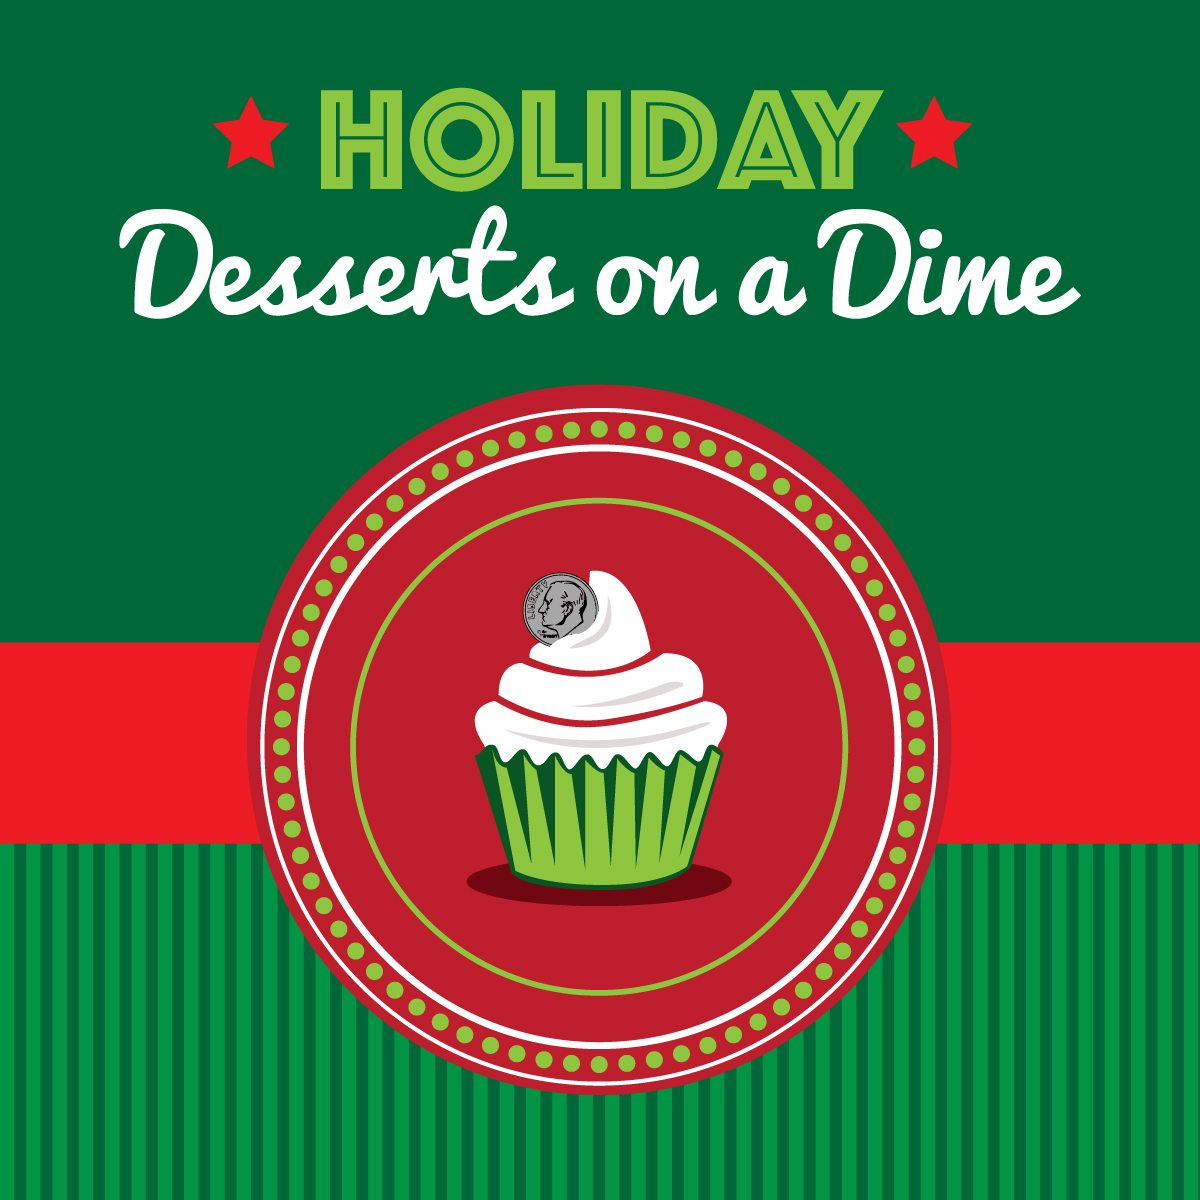 Holiday Desserts on a Dime